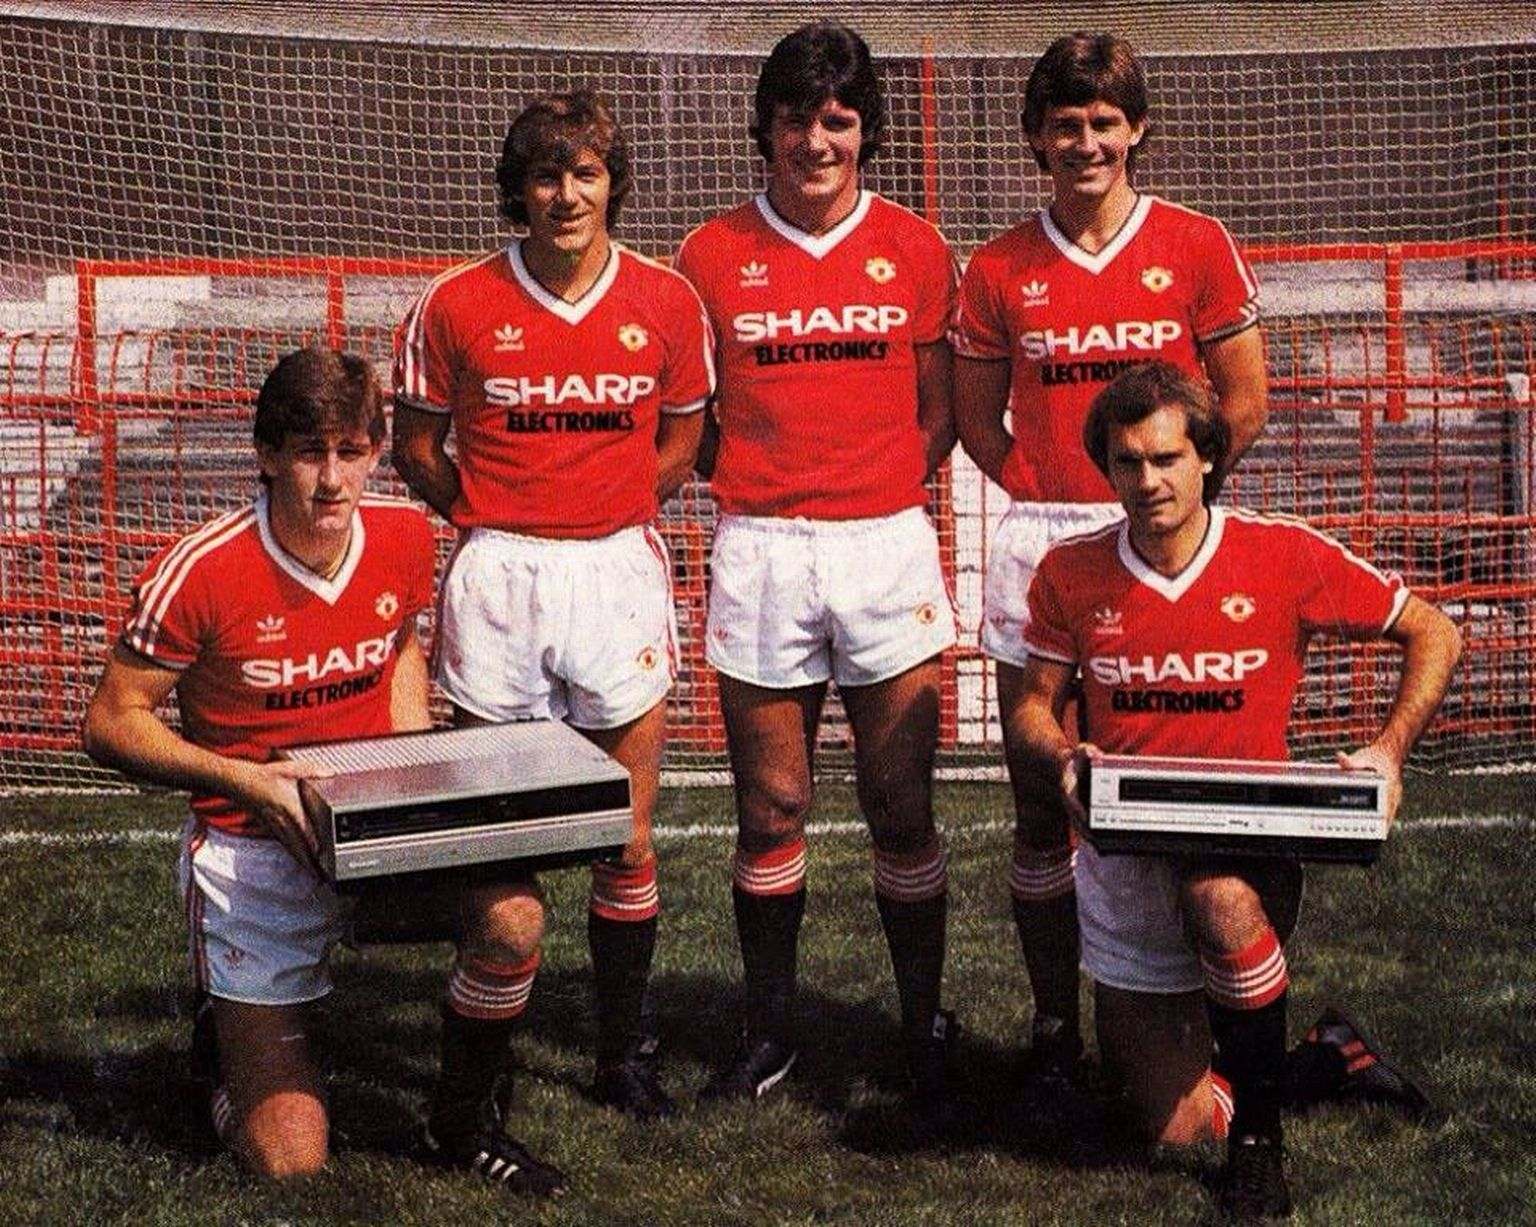 Manchester United's 1985 FA Cup success marked by Adidas